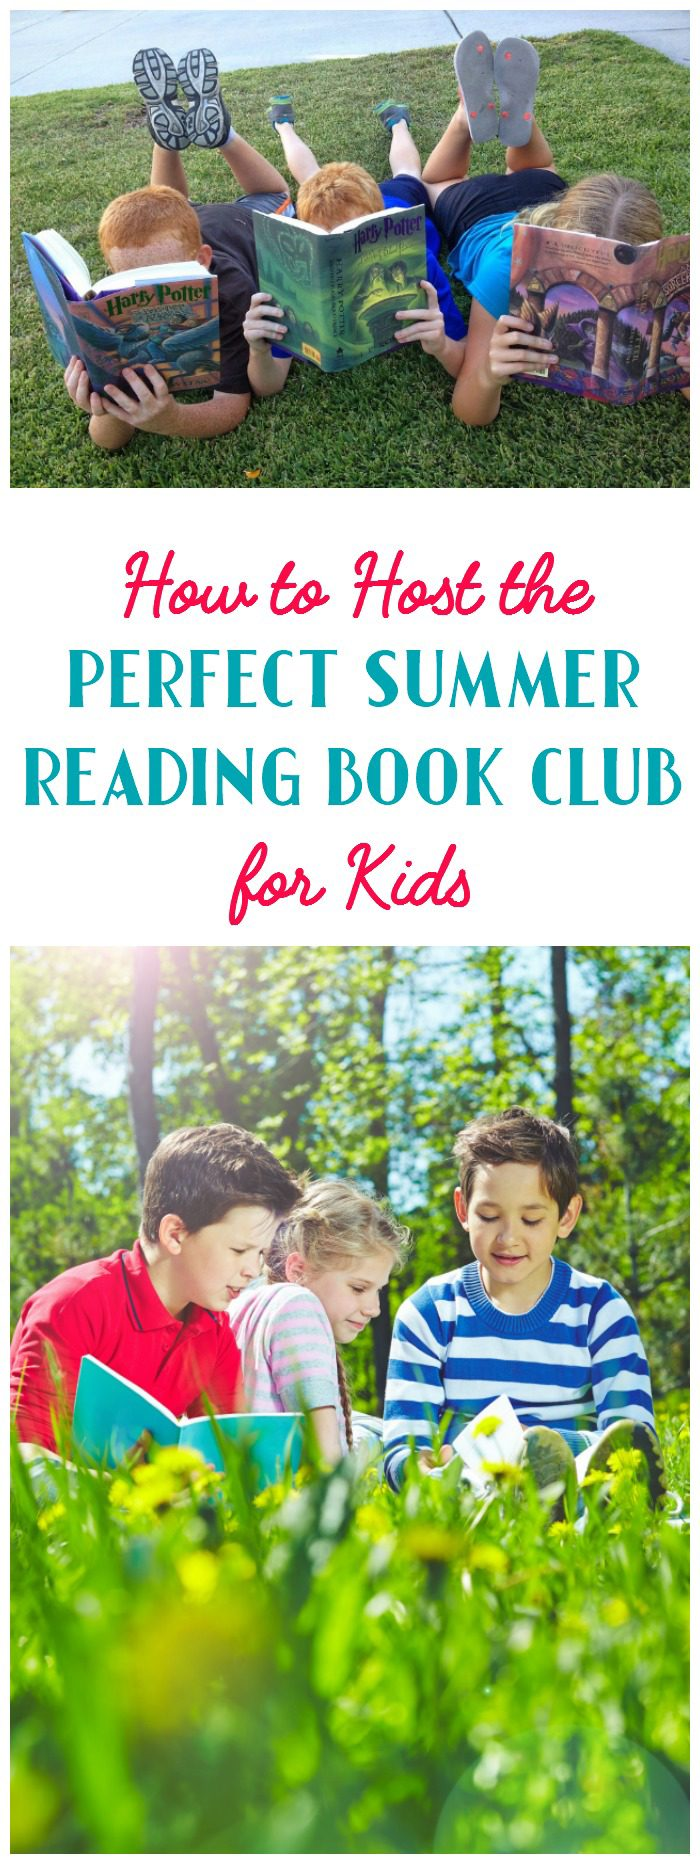 How to host the perfect book club for kids in 7 easy steps!